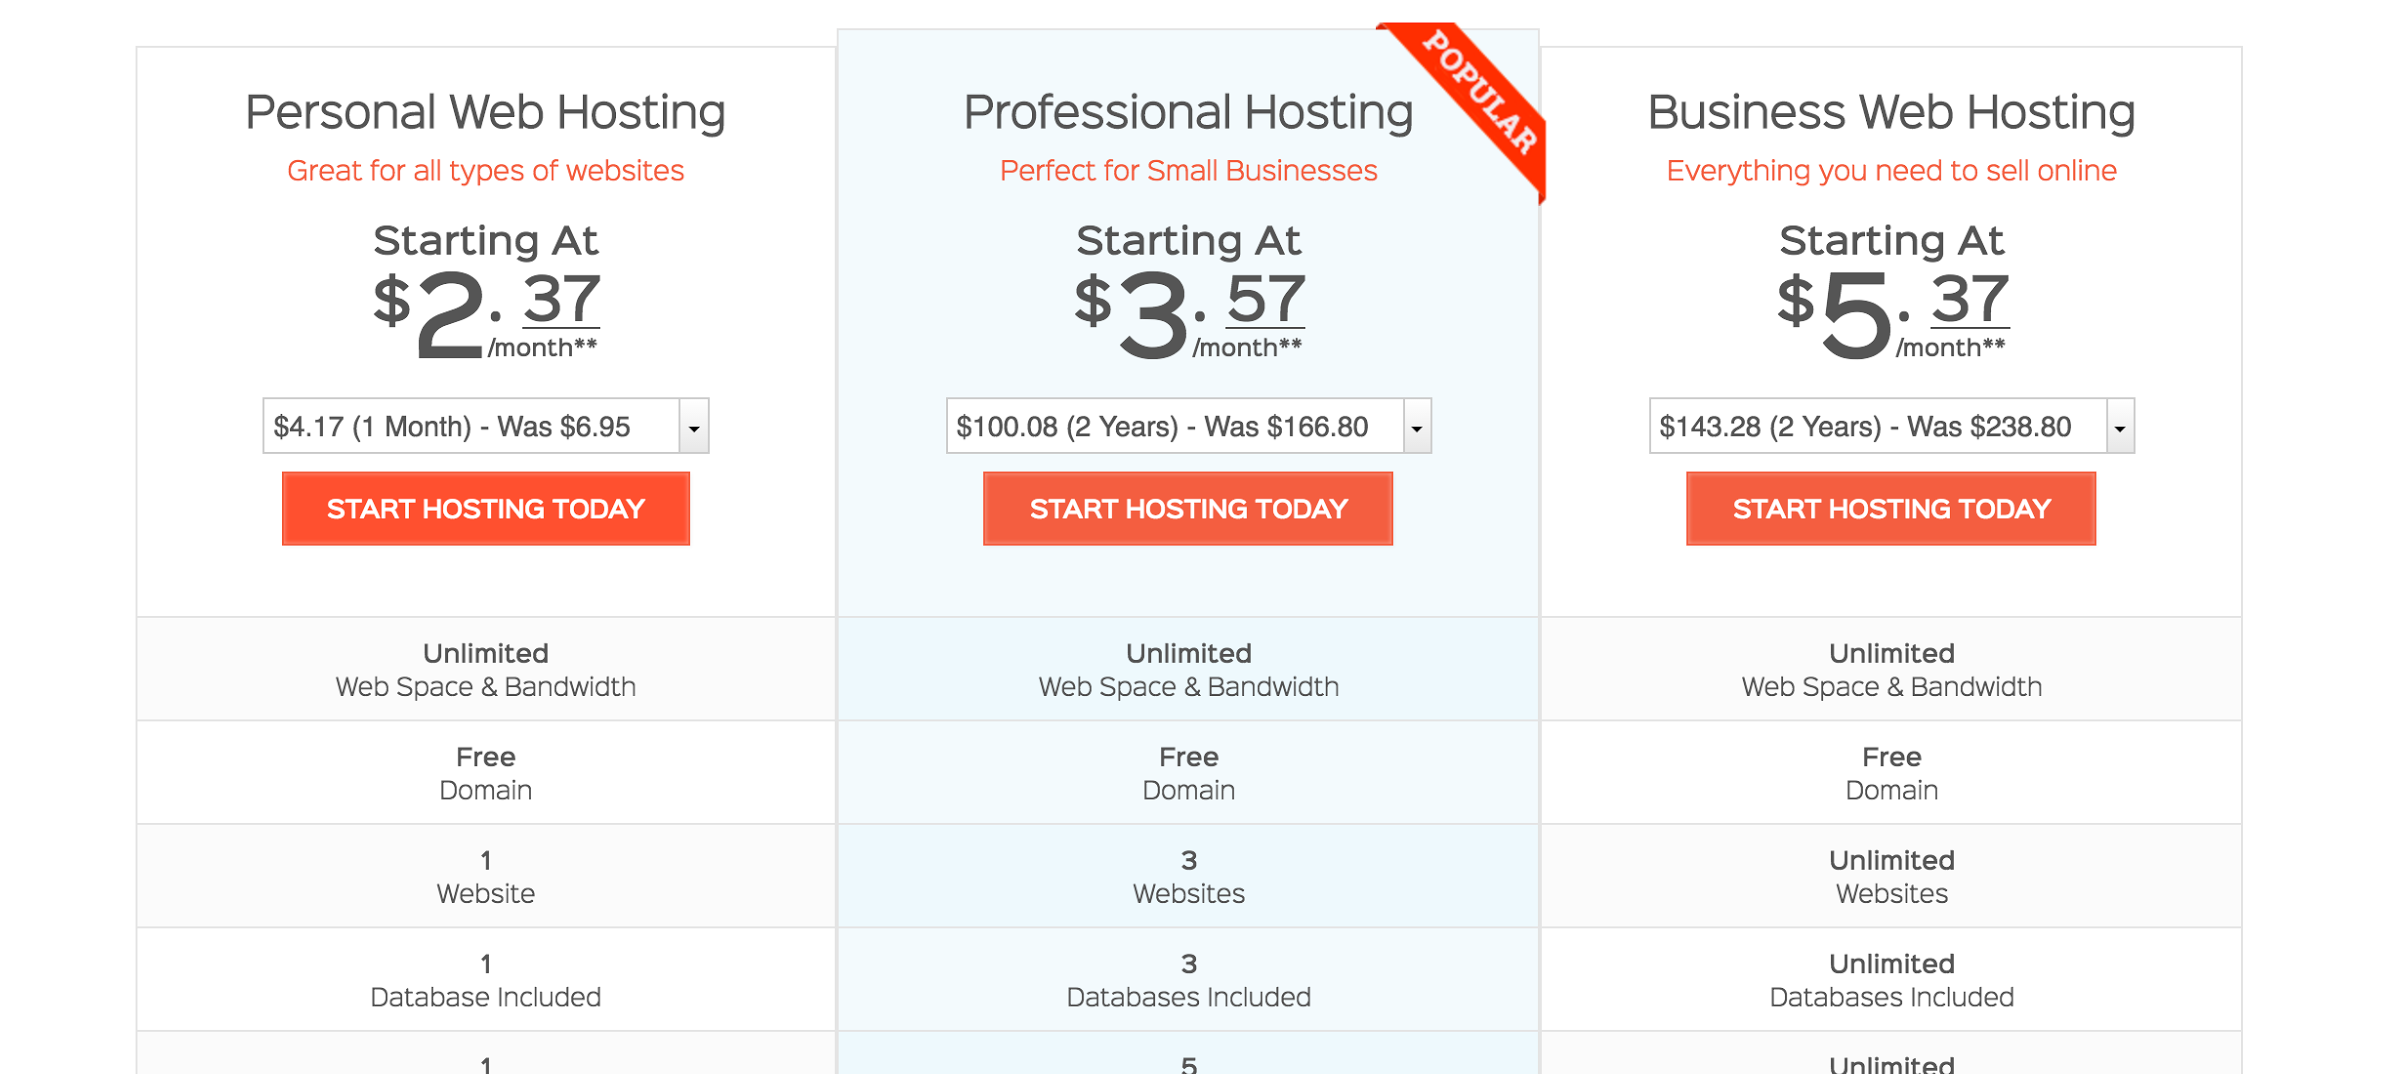 Basic guide to get a domain, set up web hosting and upload